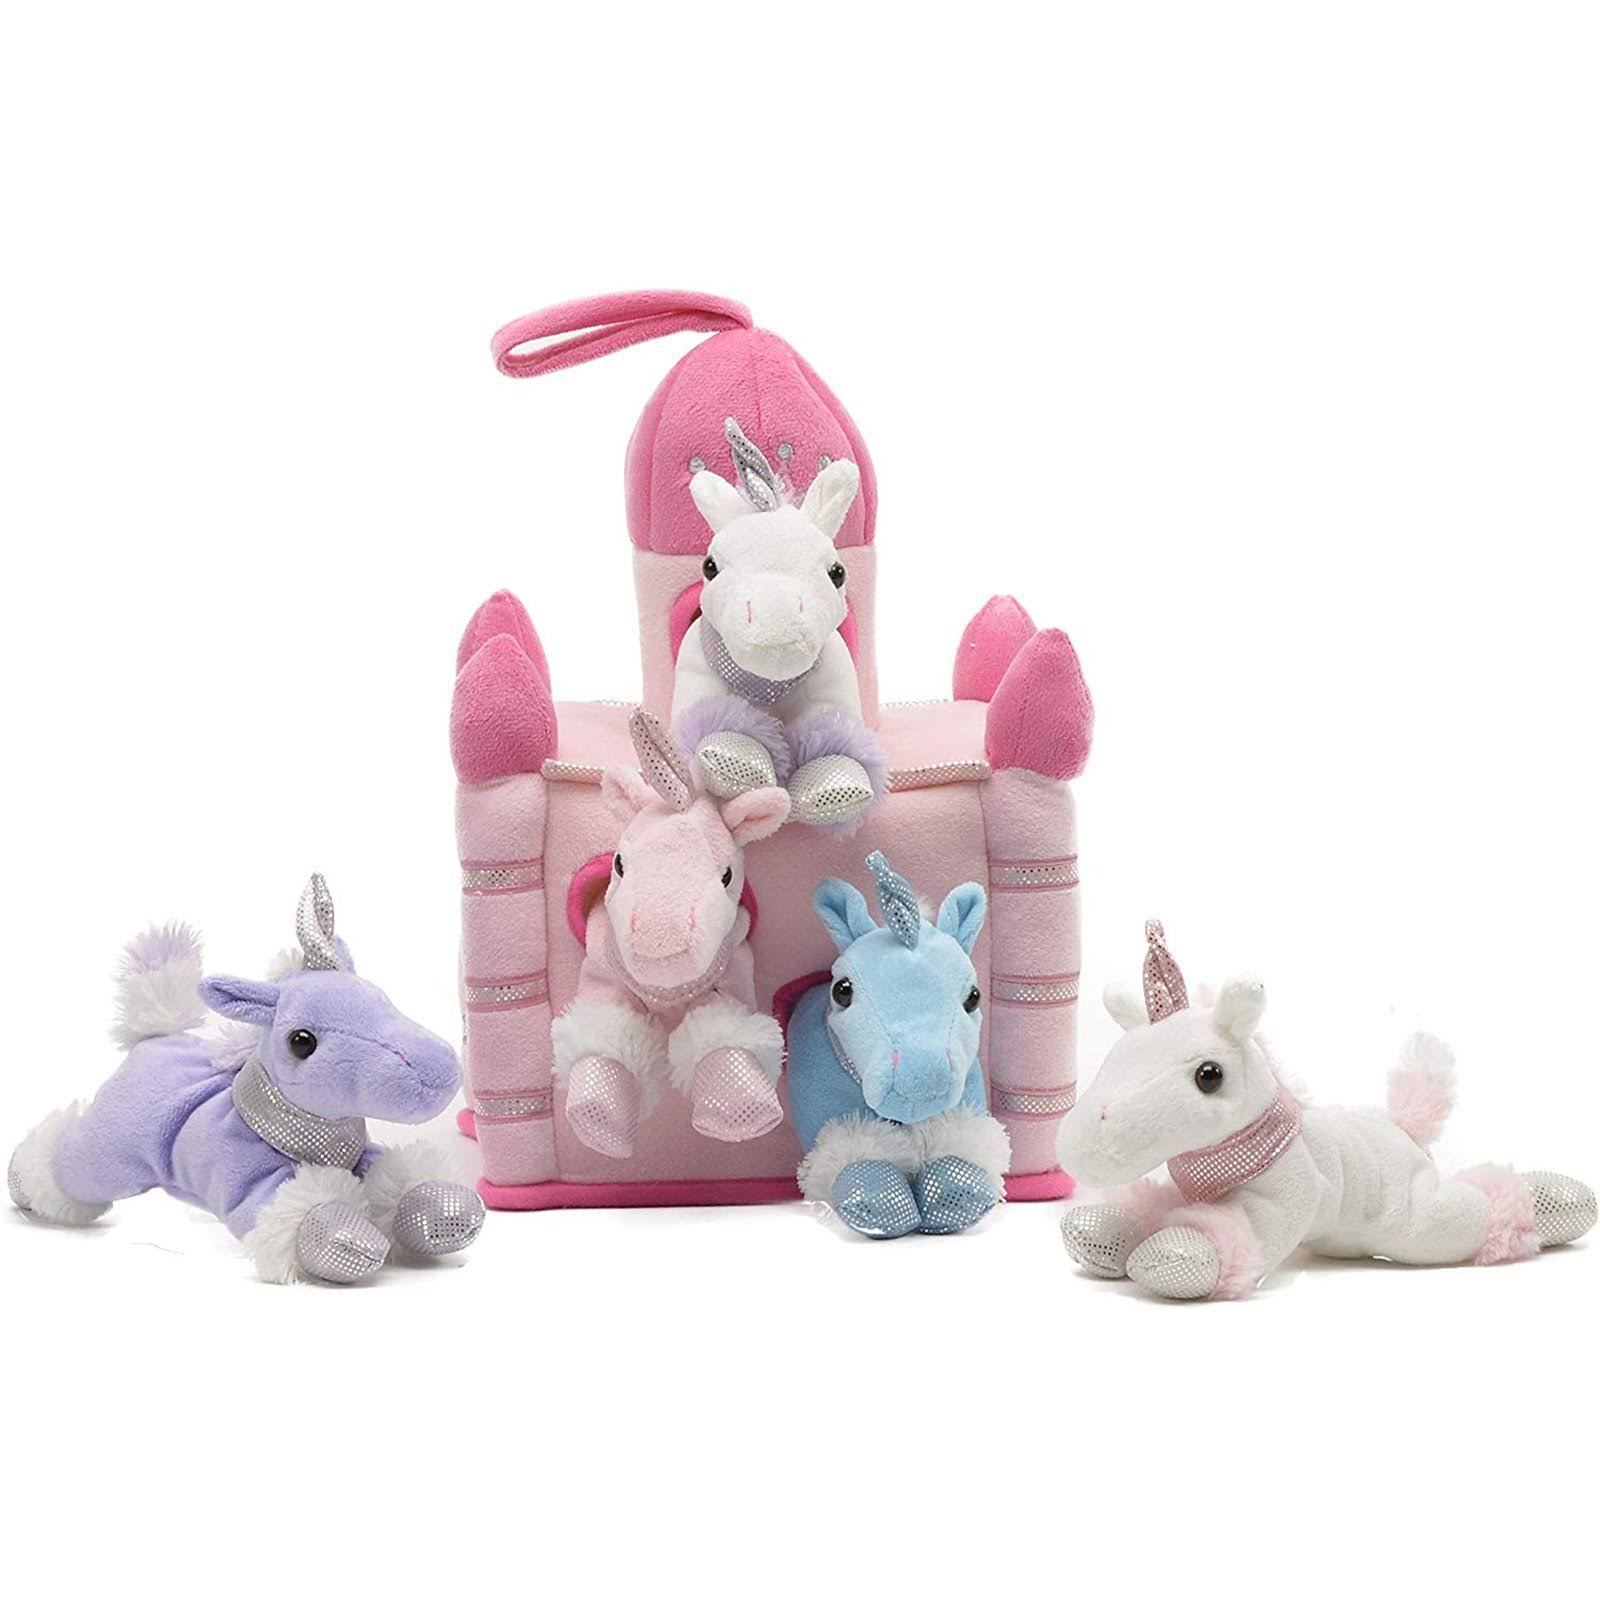 Unipak Unicorn Pink Castle 11 inch Plush Set